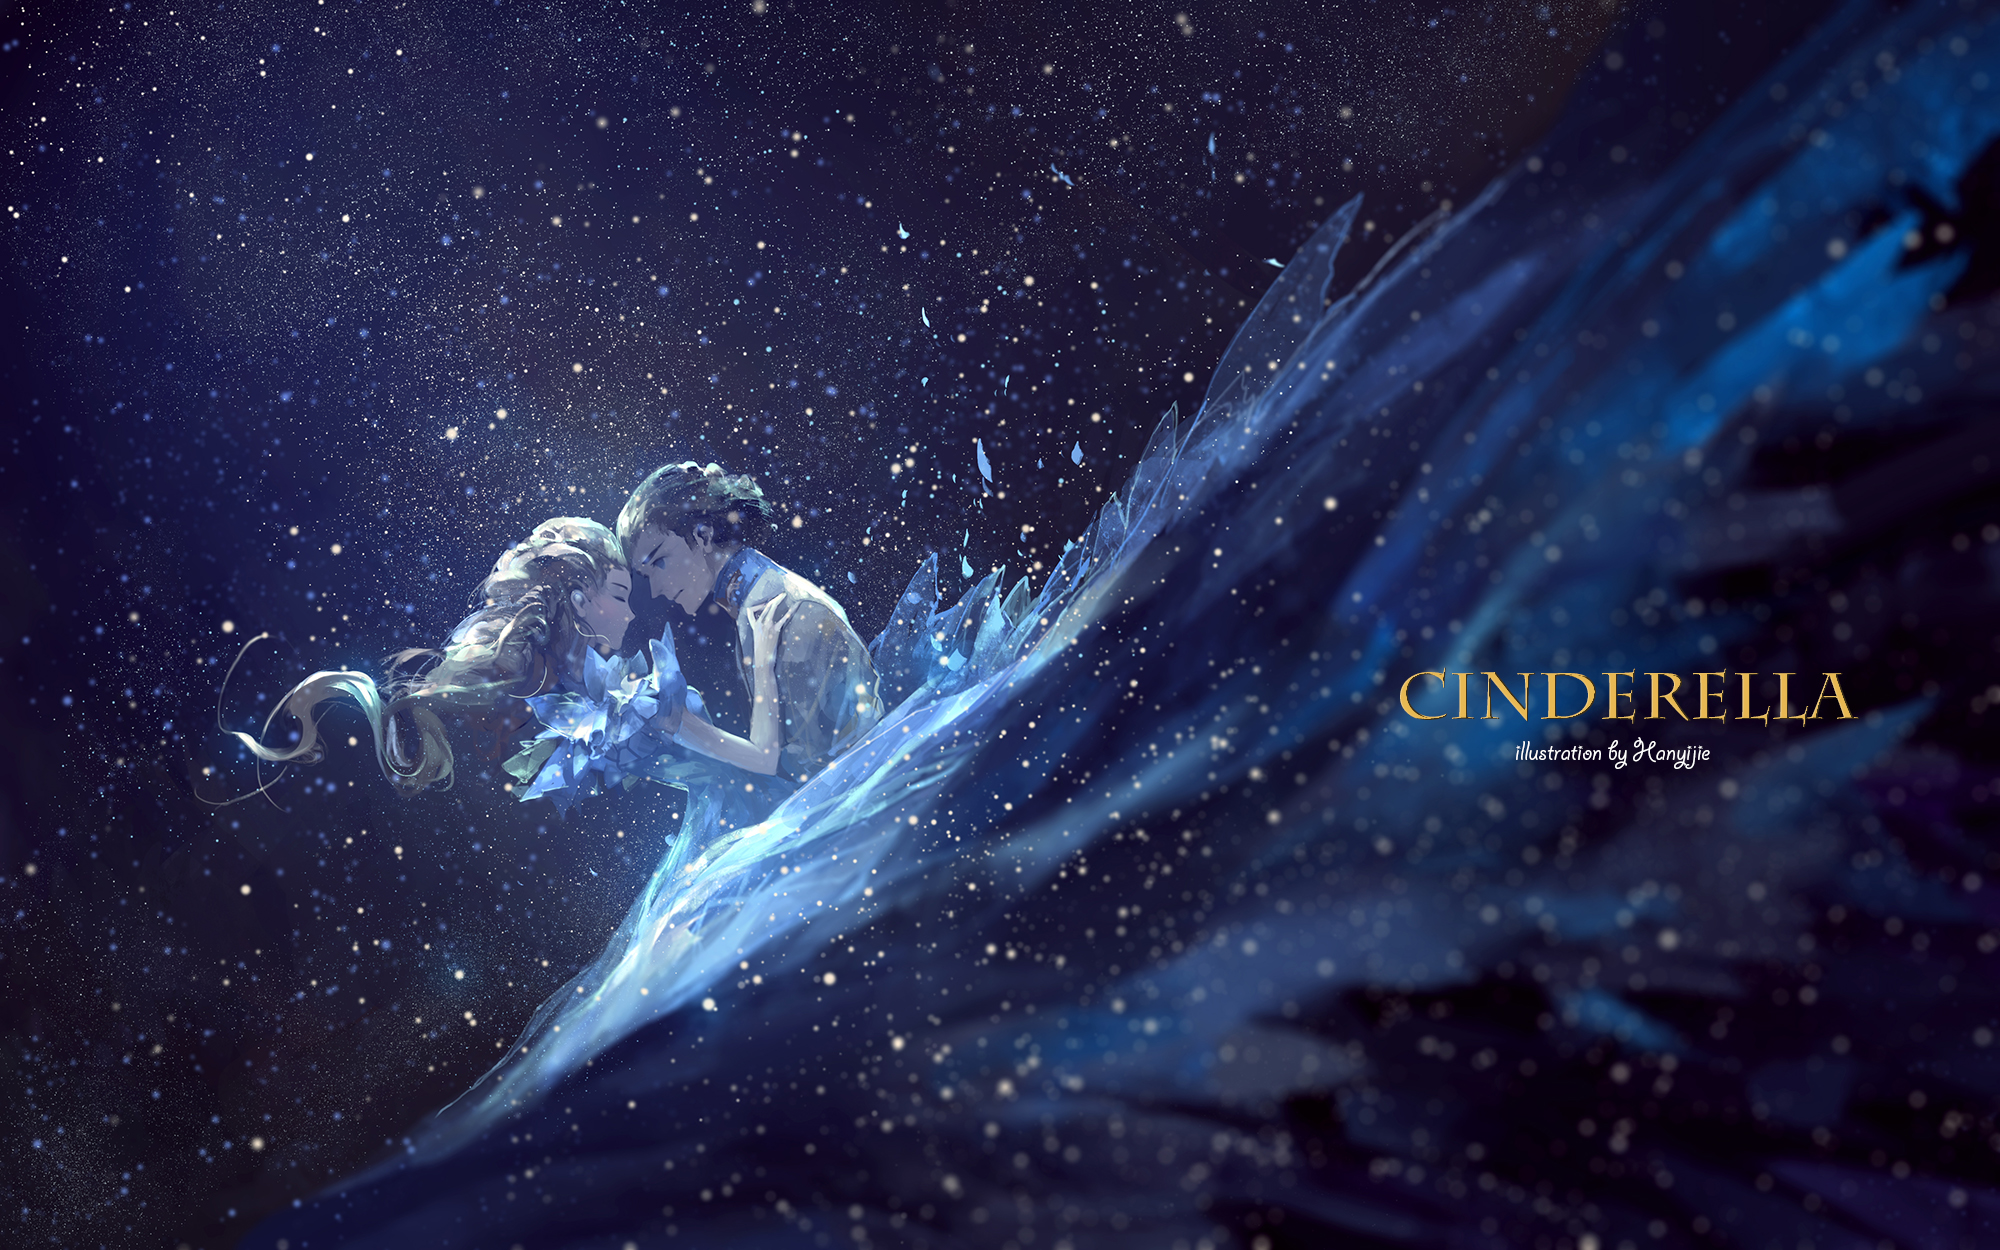 Cinderella hd wallpaper 1852535 zerochan anime image board view fullsize cinderella image thecheapjerseys Choice Image